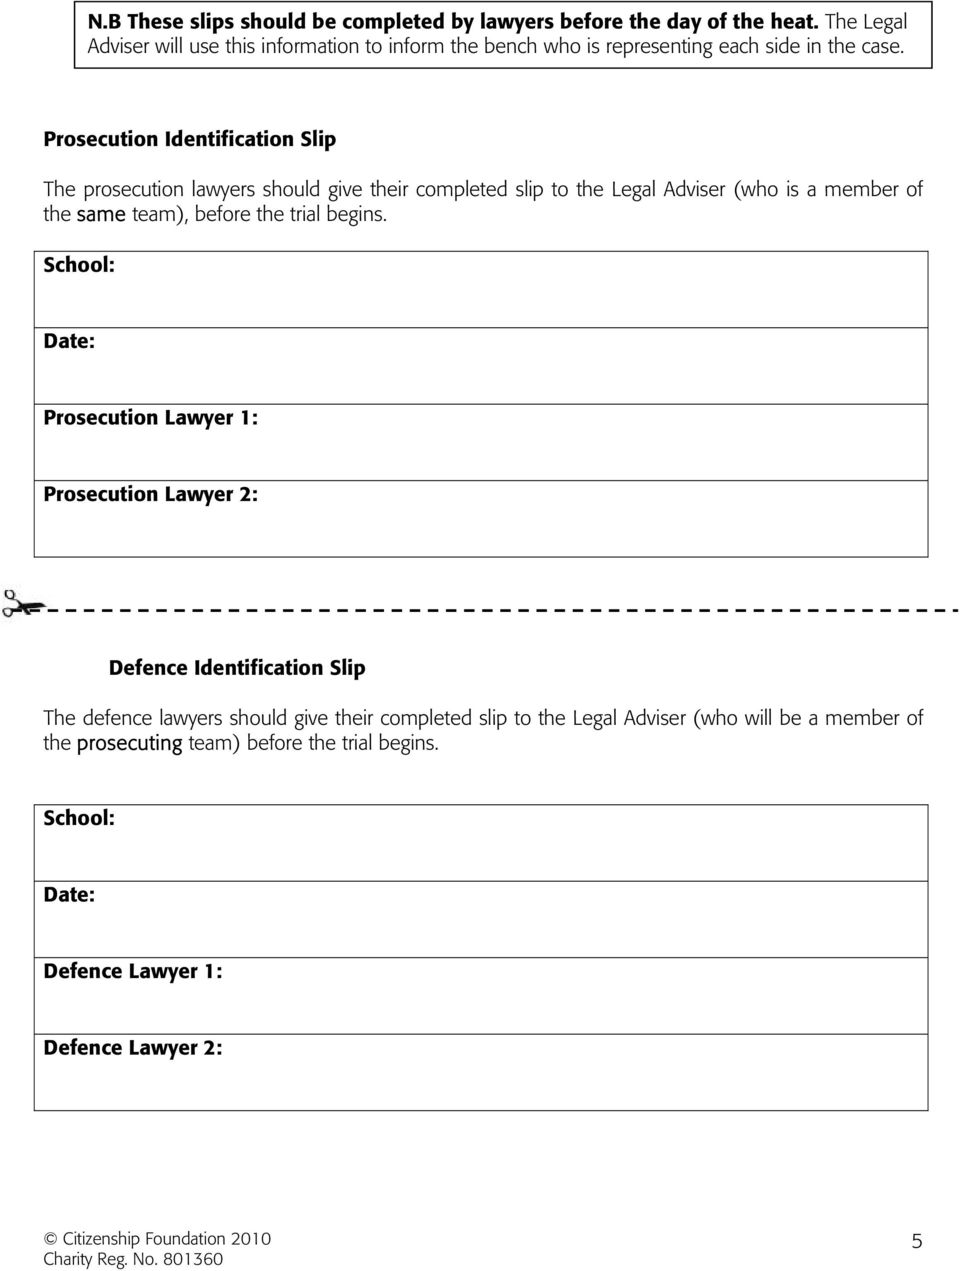 Prosecution Identification Slip The prosecution lawyers should give their completed slip to the (who is a member of the same team), before the trial